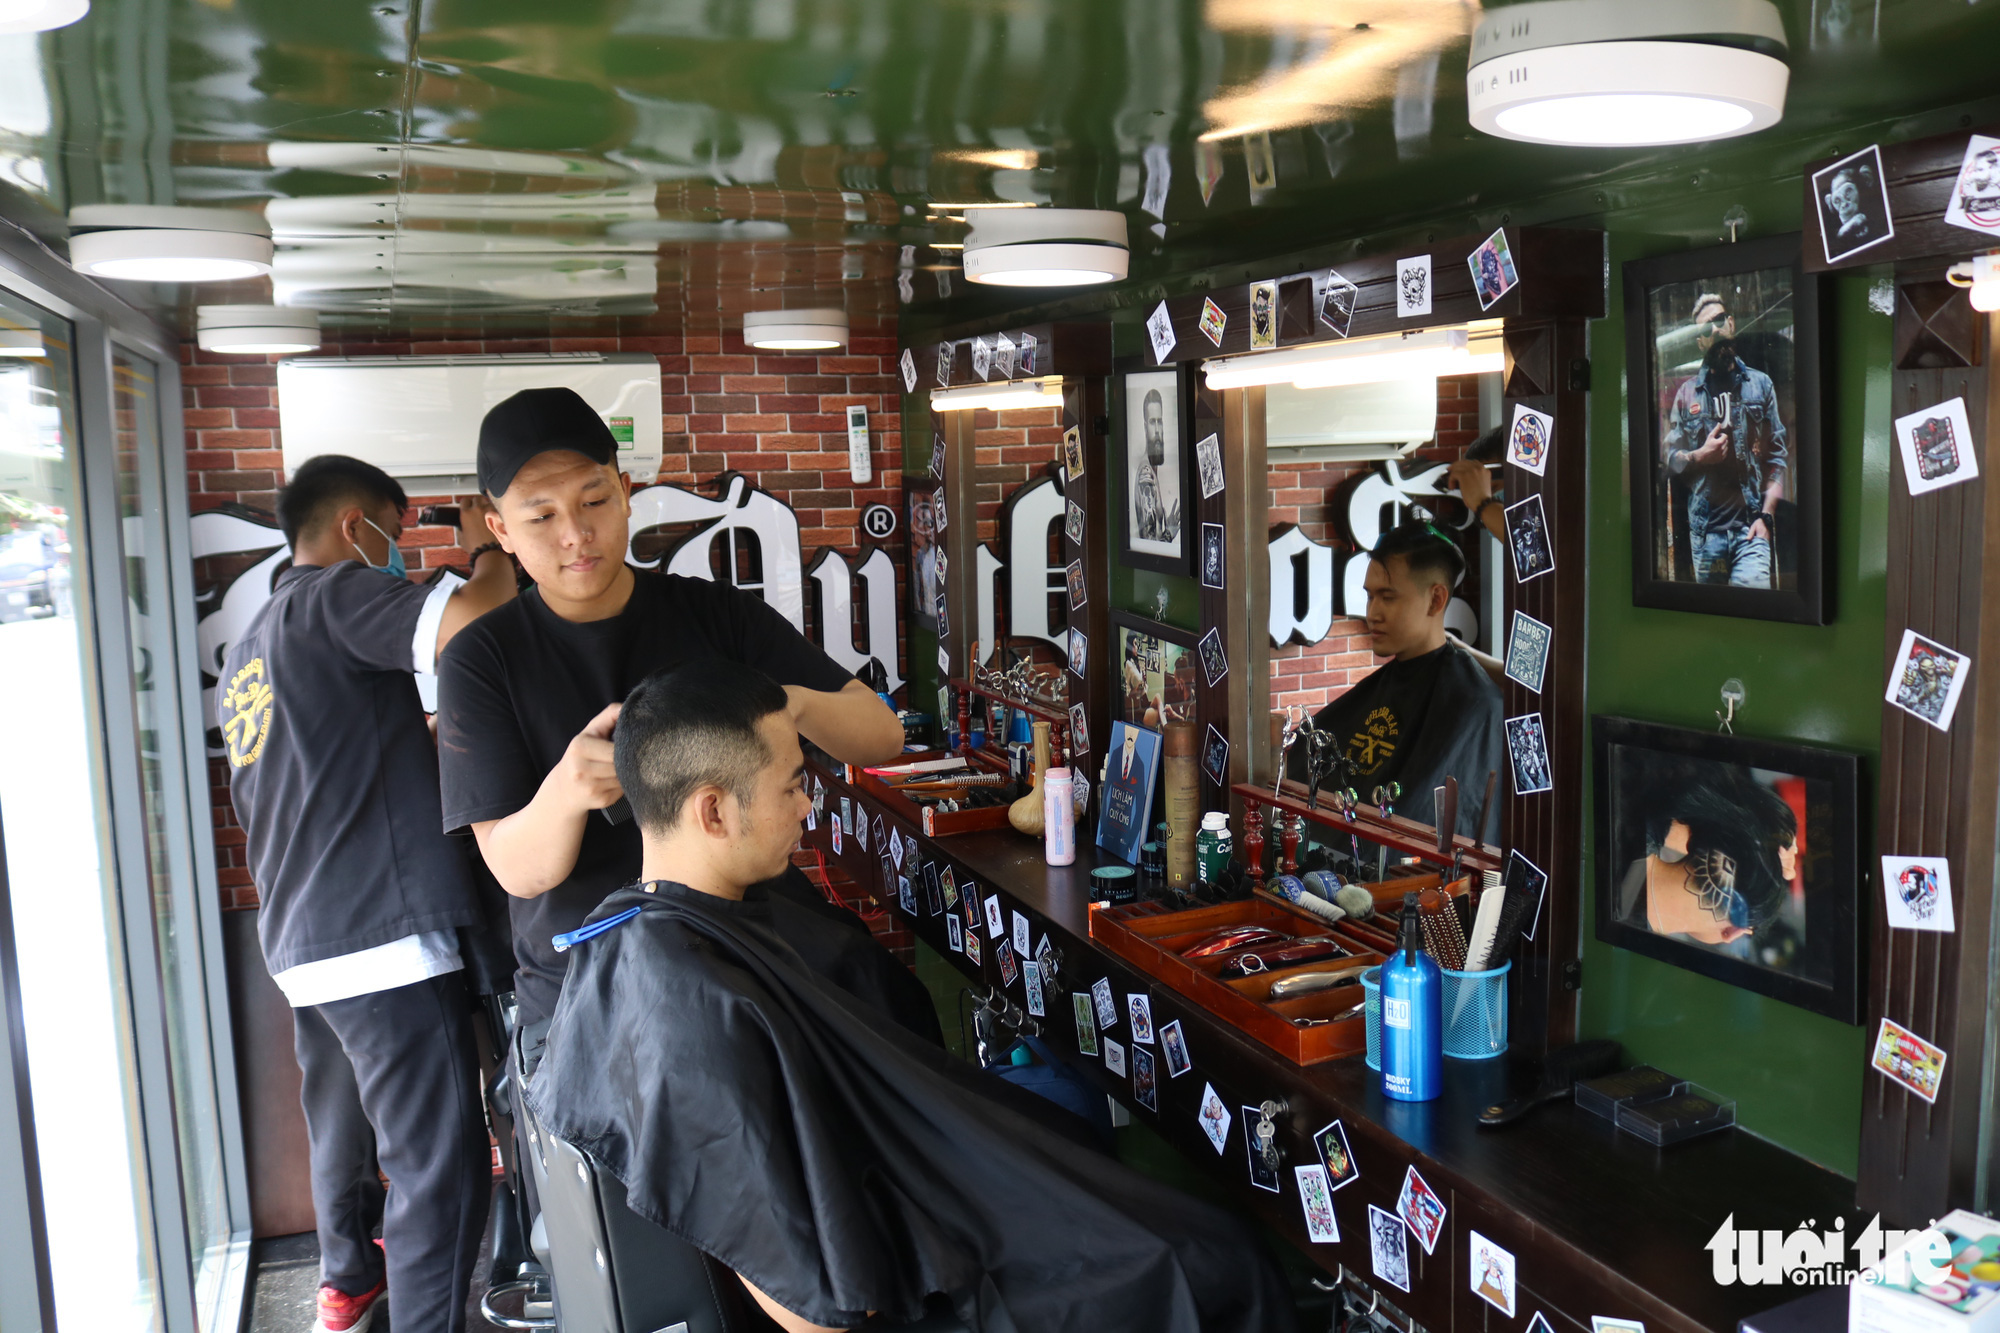 Barbers give free haircuts to customers inside a mobile barbershop in Ho Chi Minh City, Vietnam. Photo: Ngoc Phuong / Tuoi Tre